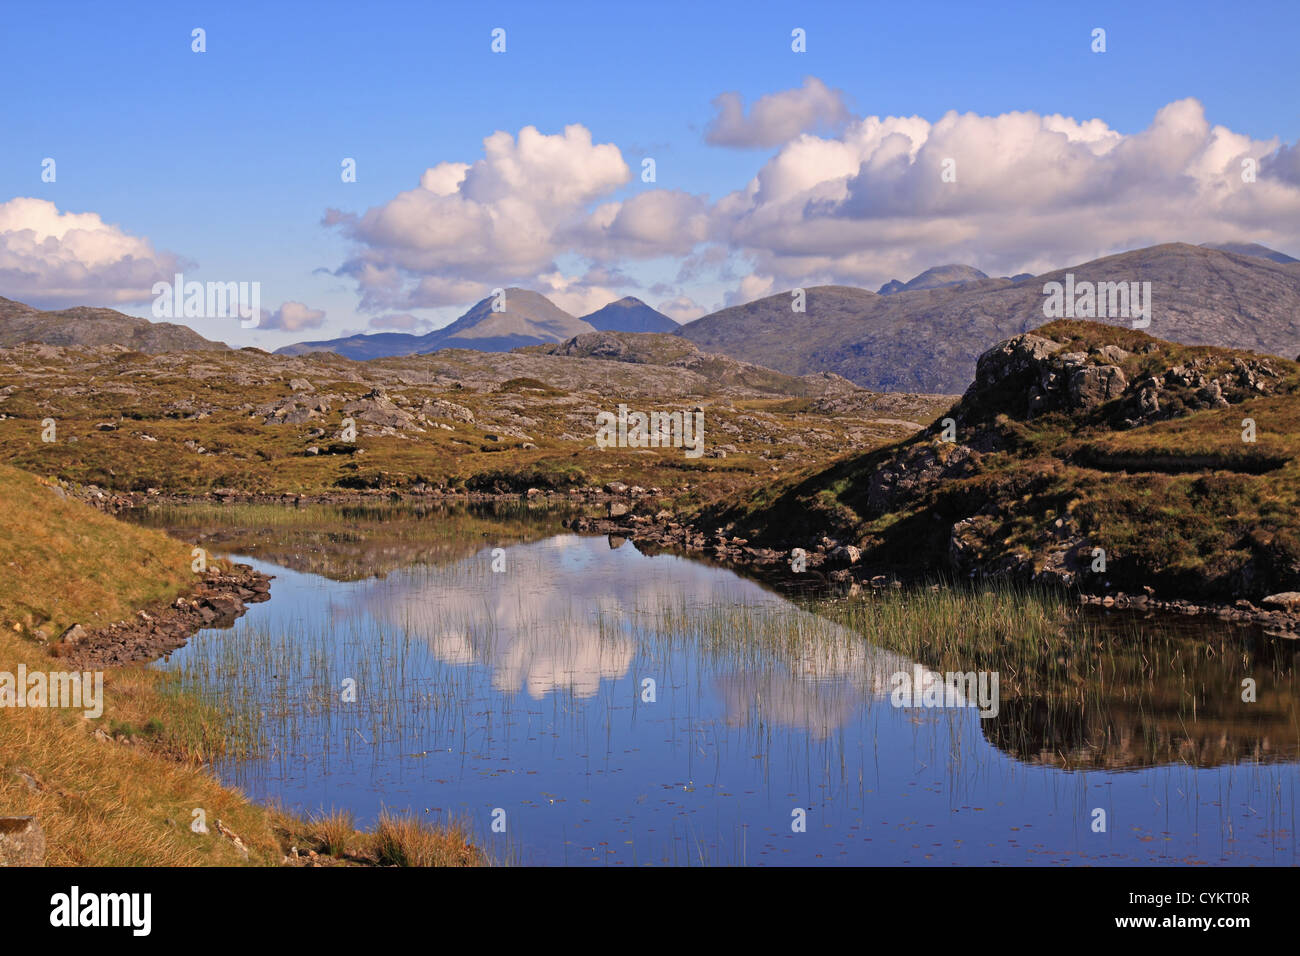 UK Scotland Highland Outer hebrides Isle of Harris Lochan near Tarbert and the Harris Mountains - Stock Image